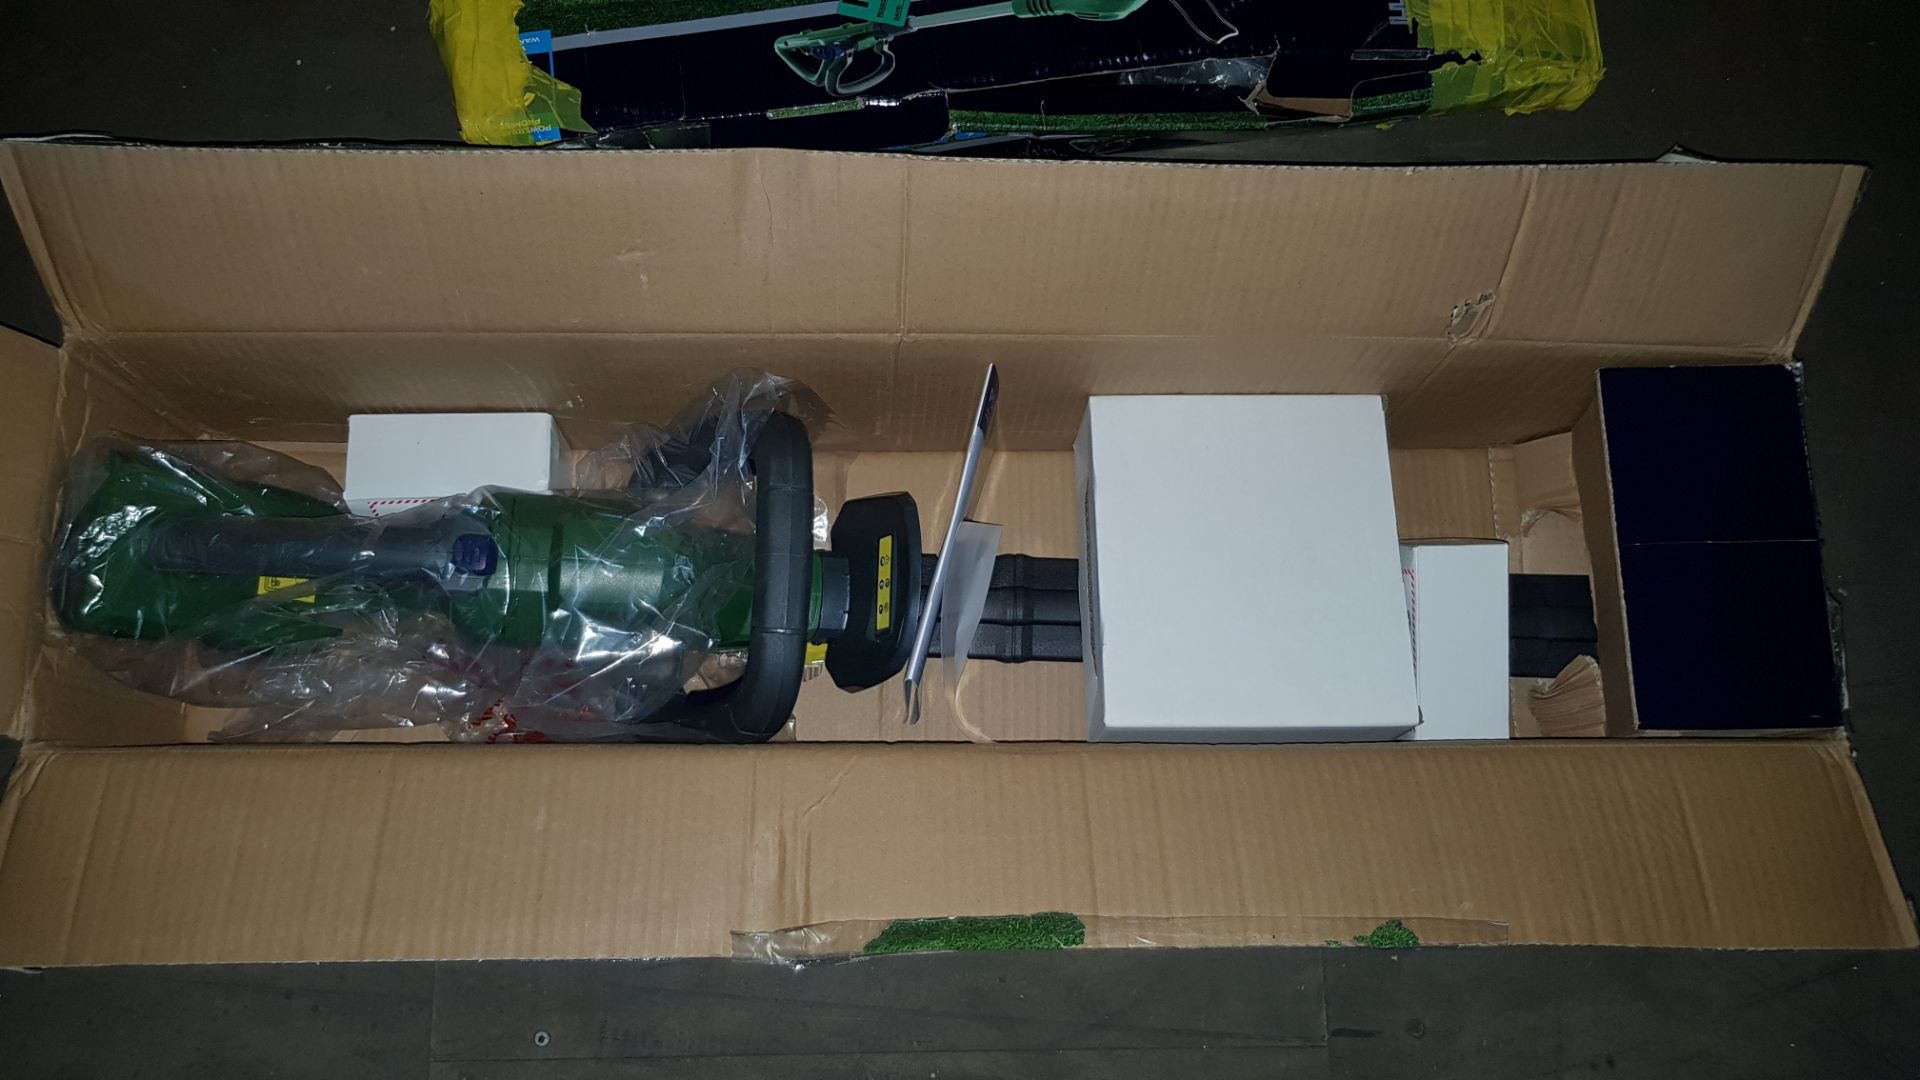 (P5) 2x Powerbase Items. 1x 52cm 40V Cordless Hedge Trimmer RRP £90 (Unit Appears Clean., Unused Wi - Image 3 of 3